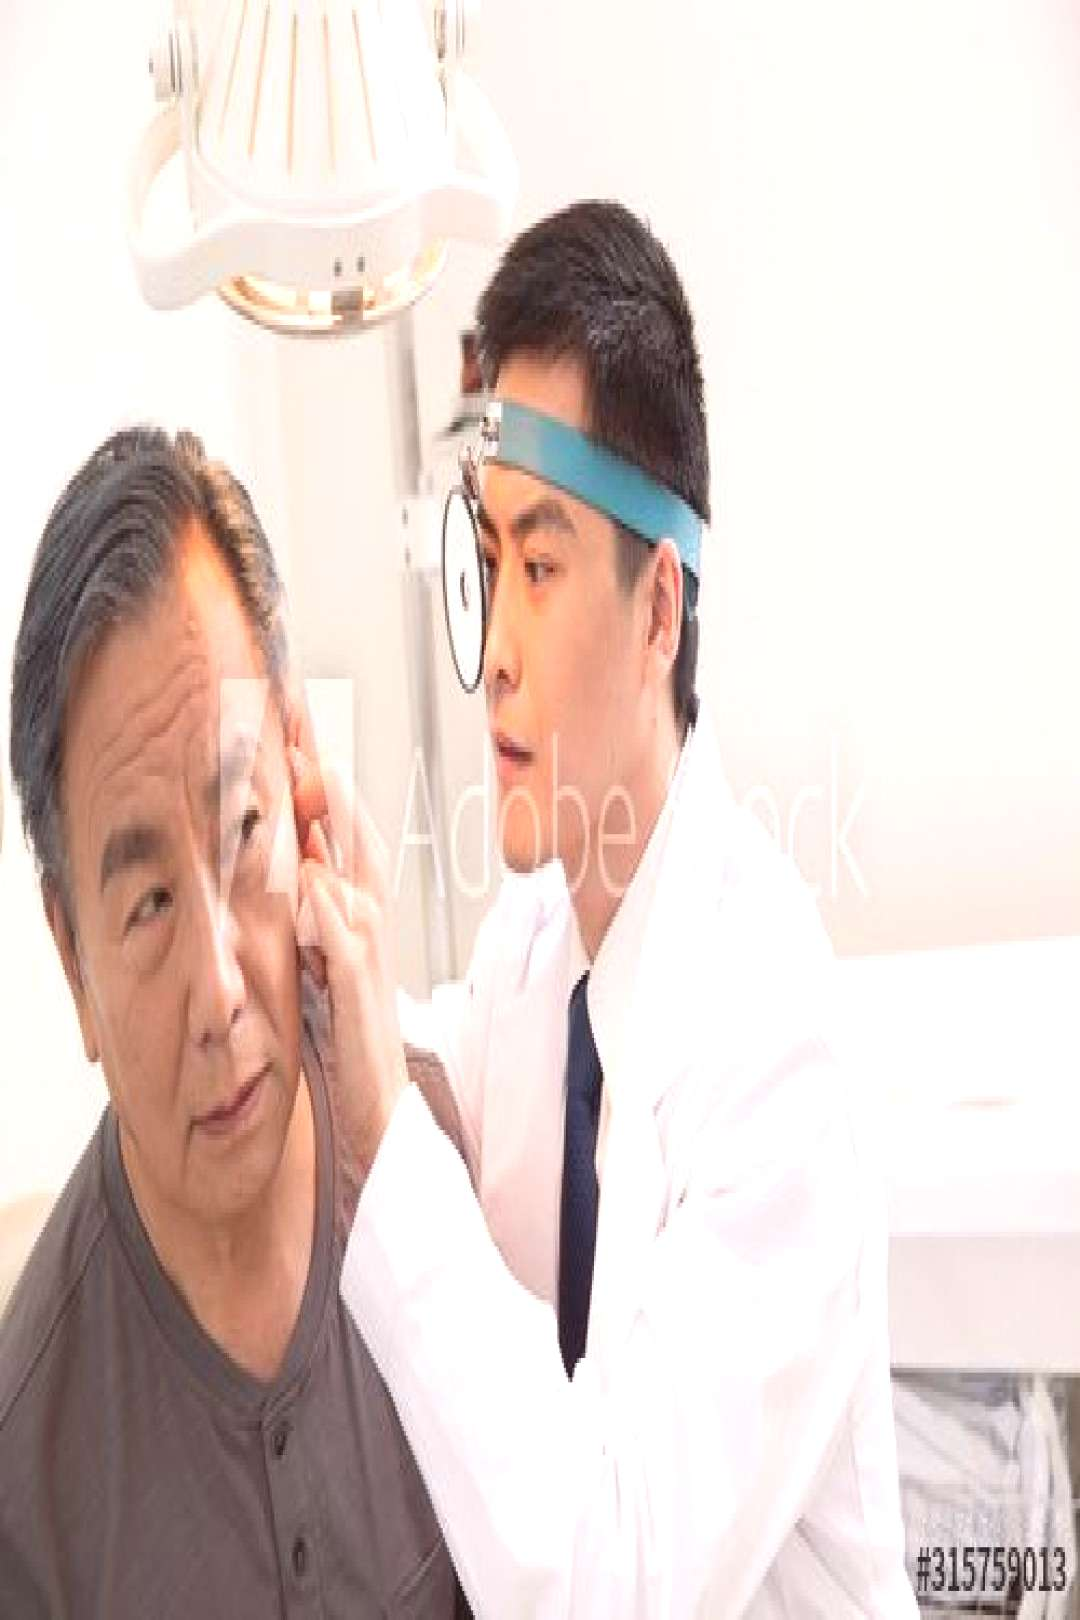 Doctors give patients to check the ear ,